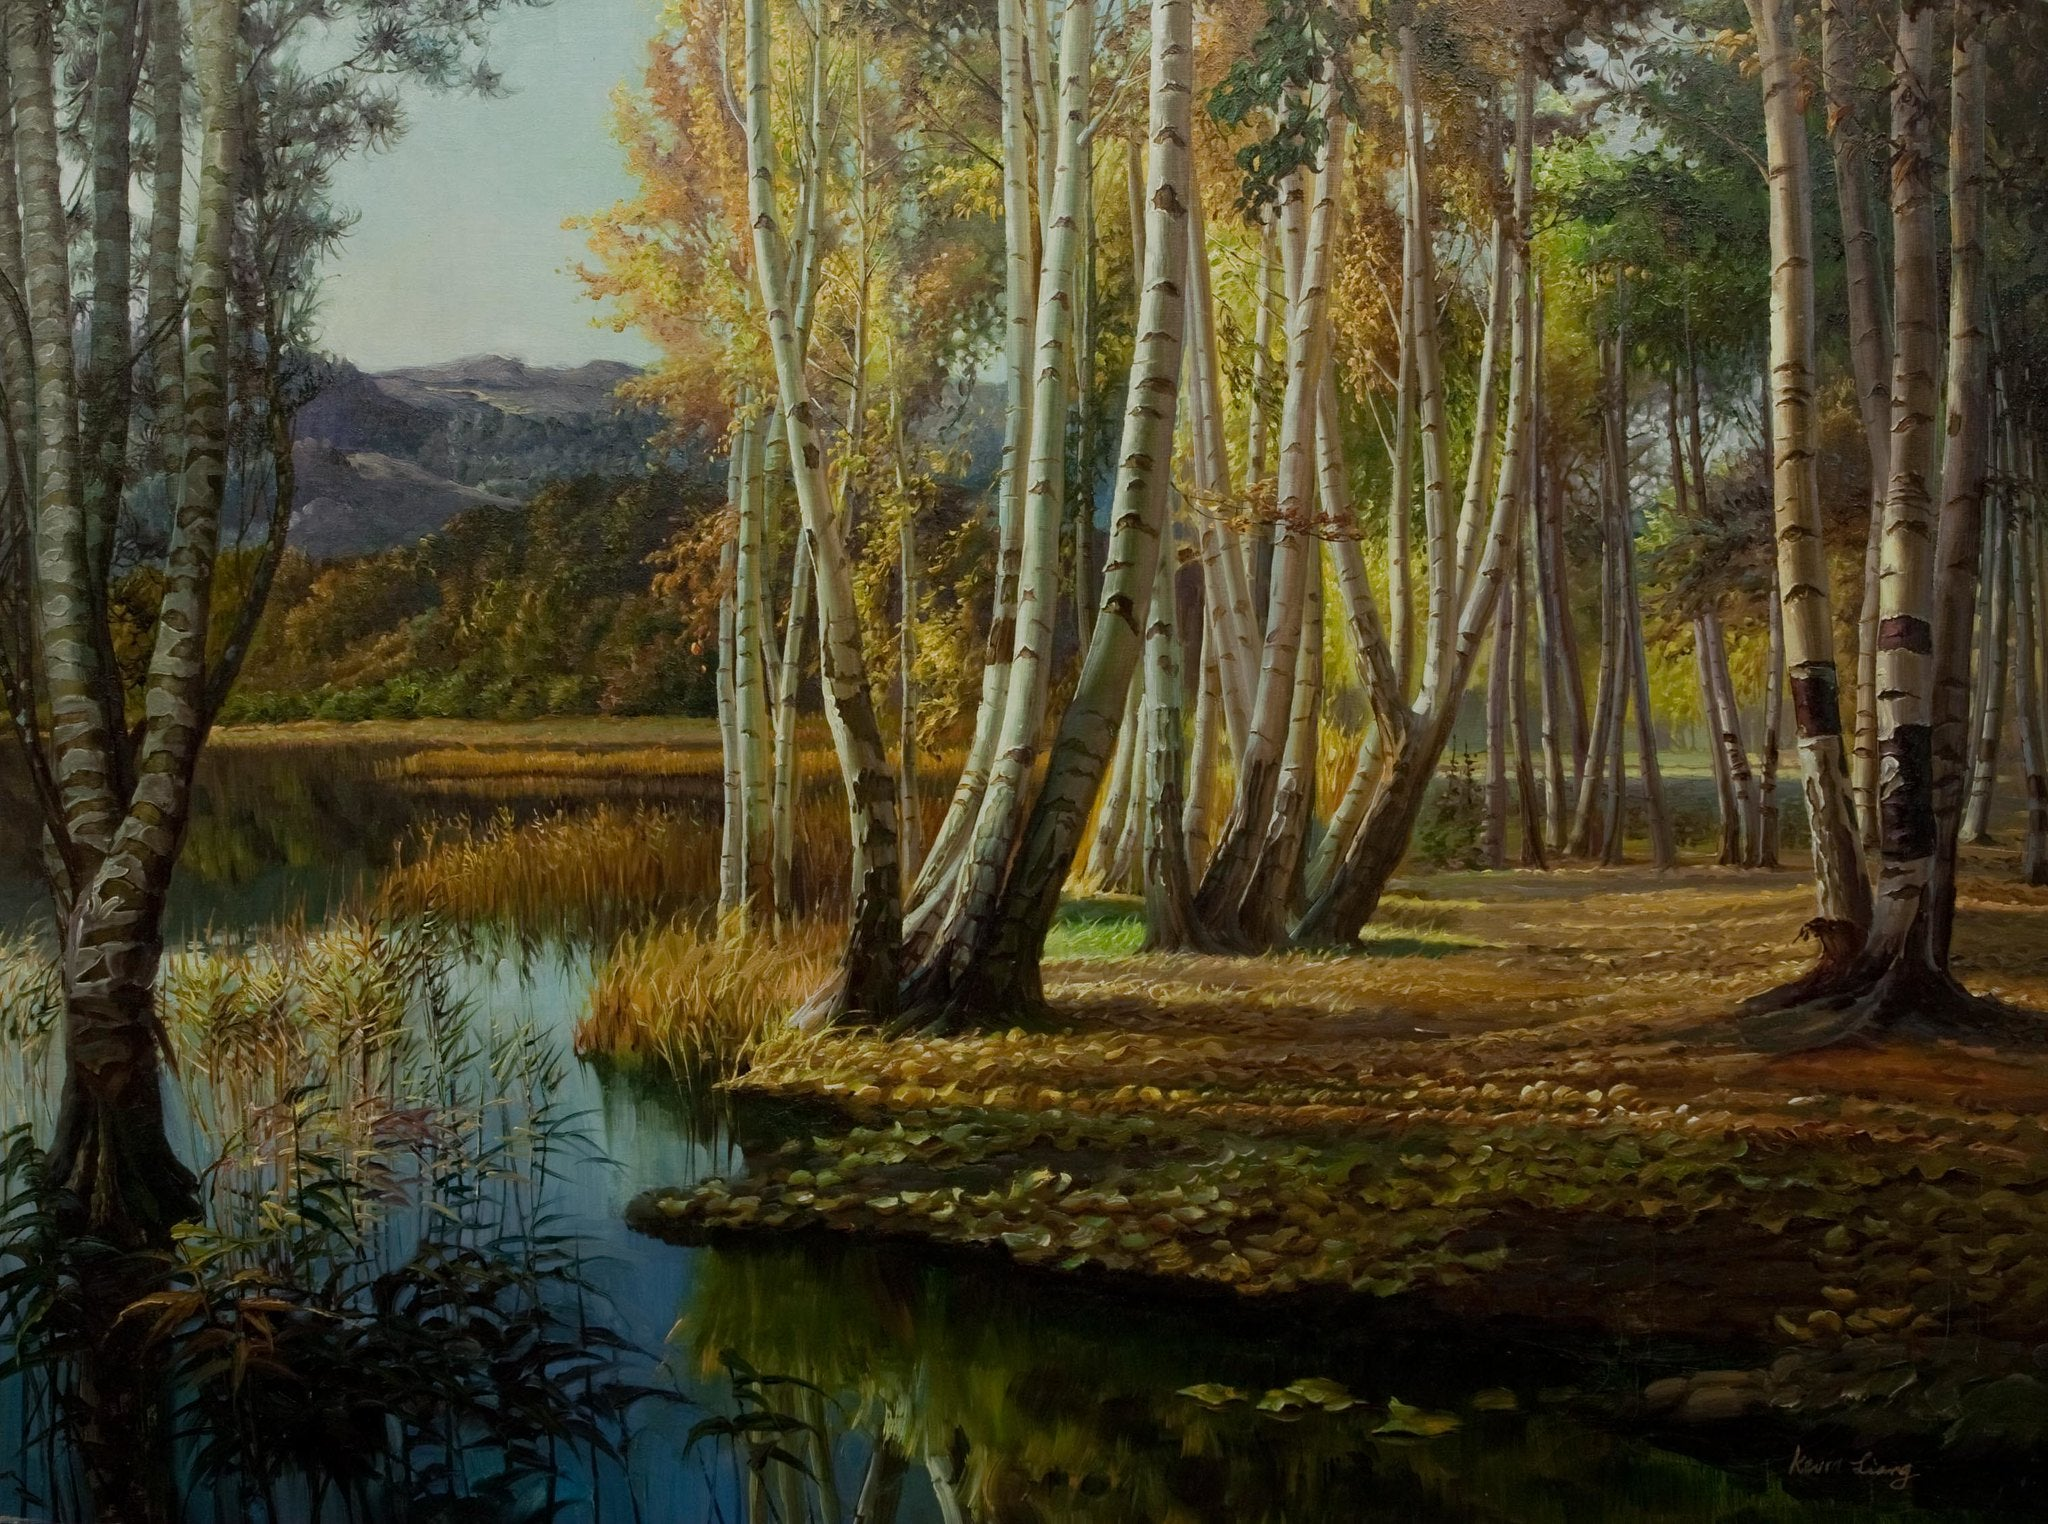 """Autumn Reflection""  Kevin Liang 2005  Original oil on canvas with frame 36"" x 46"".by Kevin Liang"